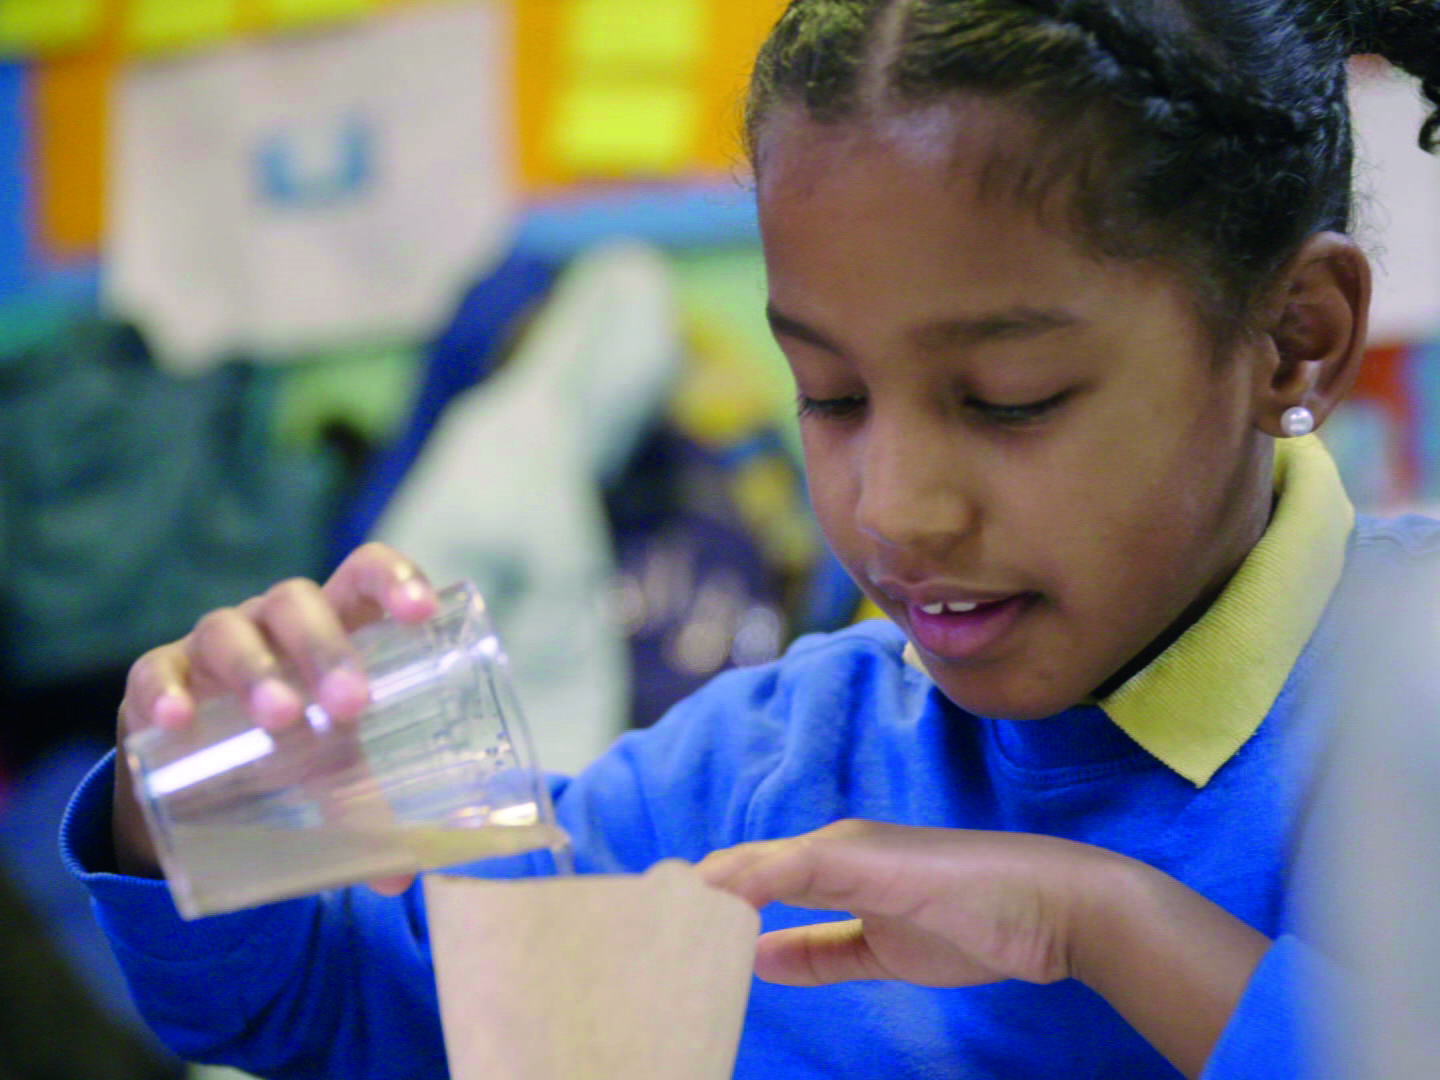 Brian Cox school experiments: How can we clean dirty water?